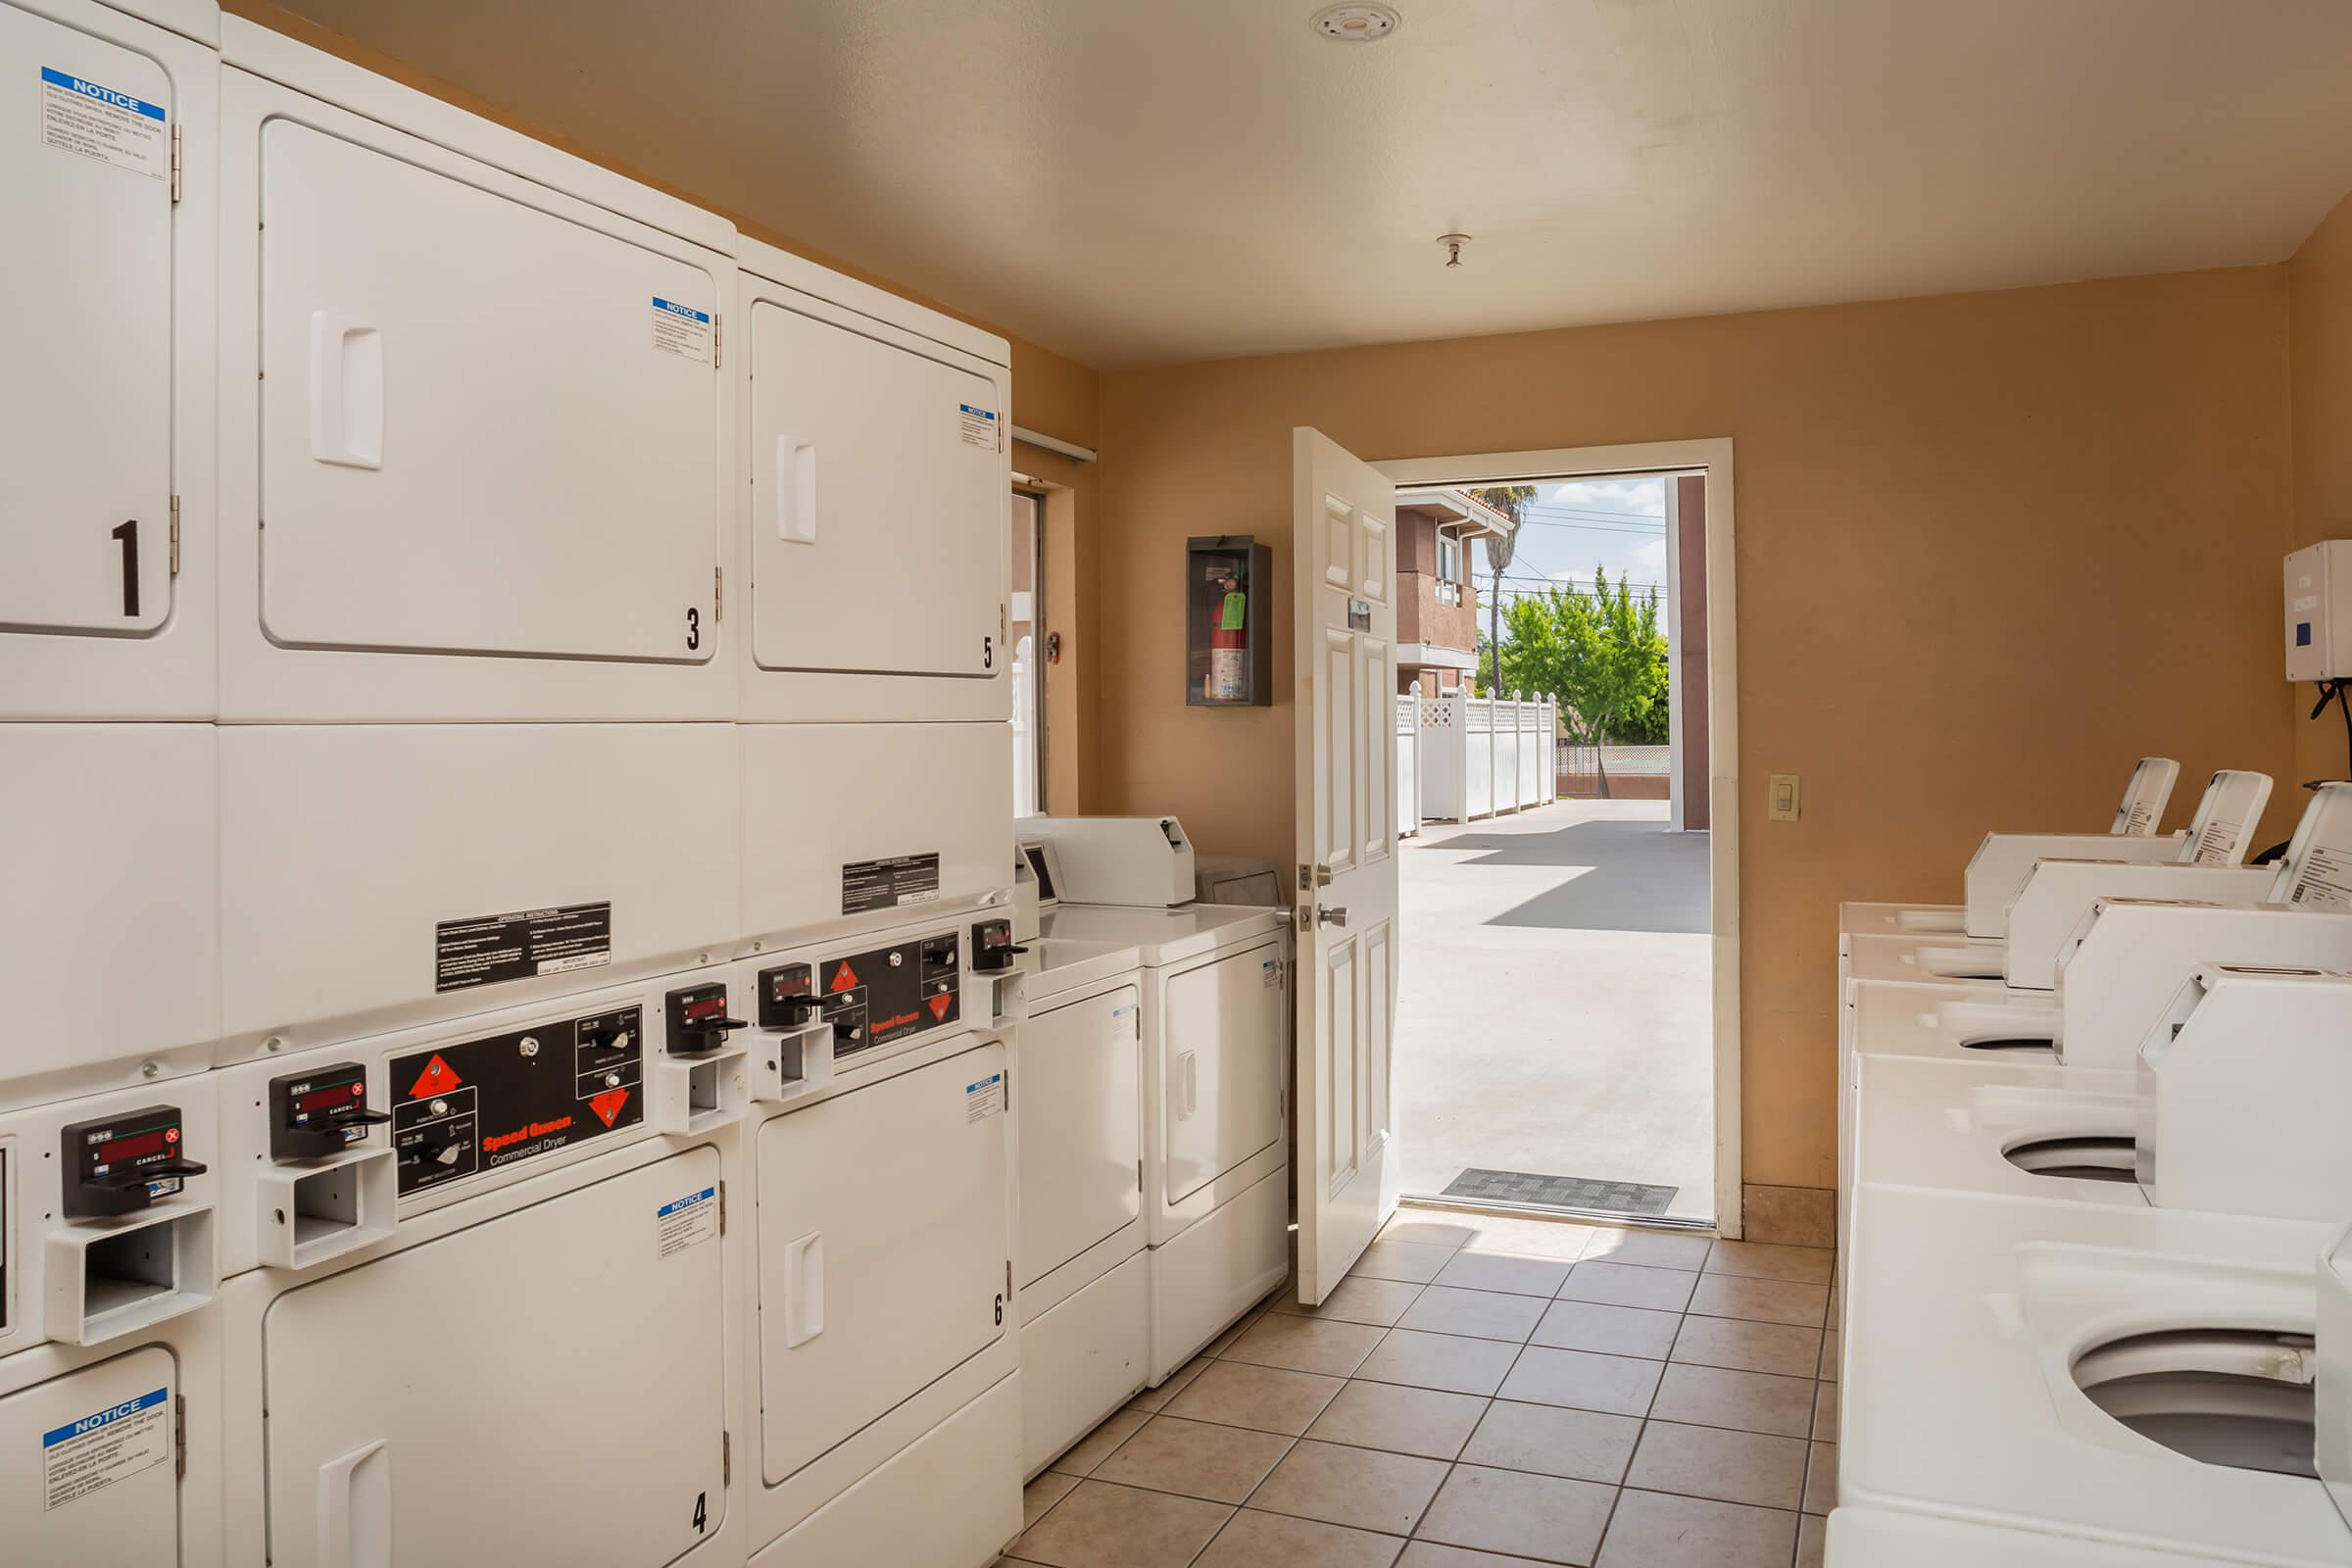 Washer and dryers in laundry room